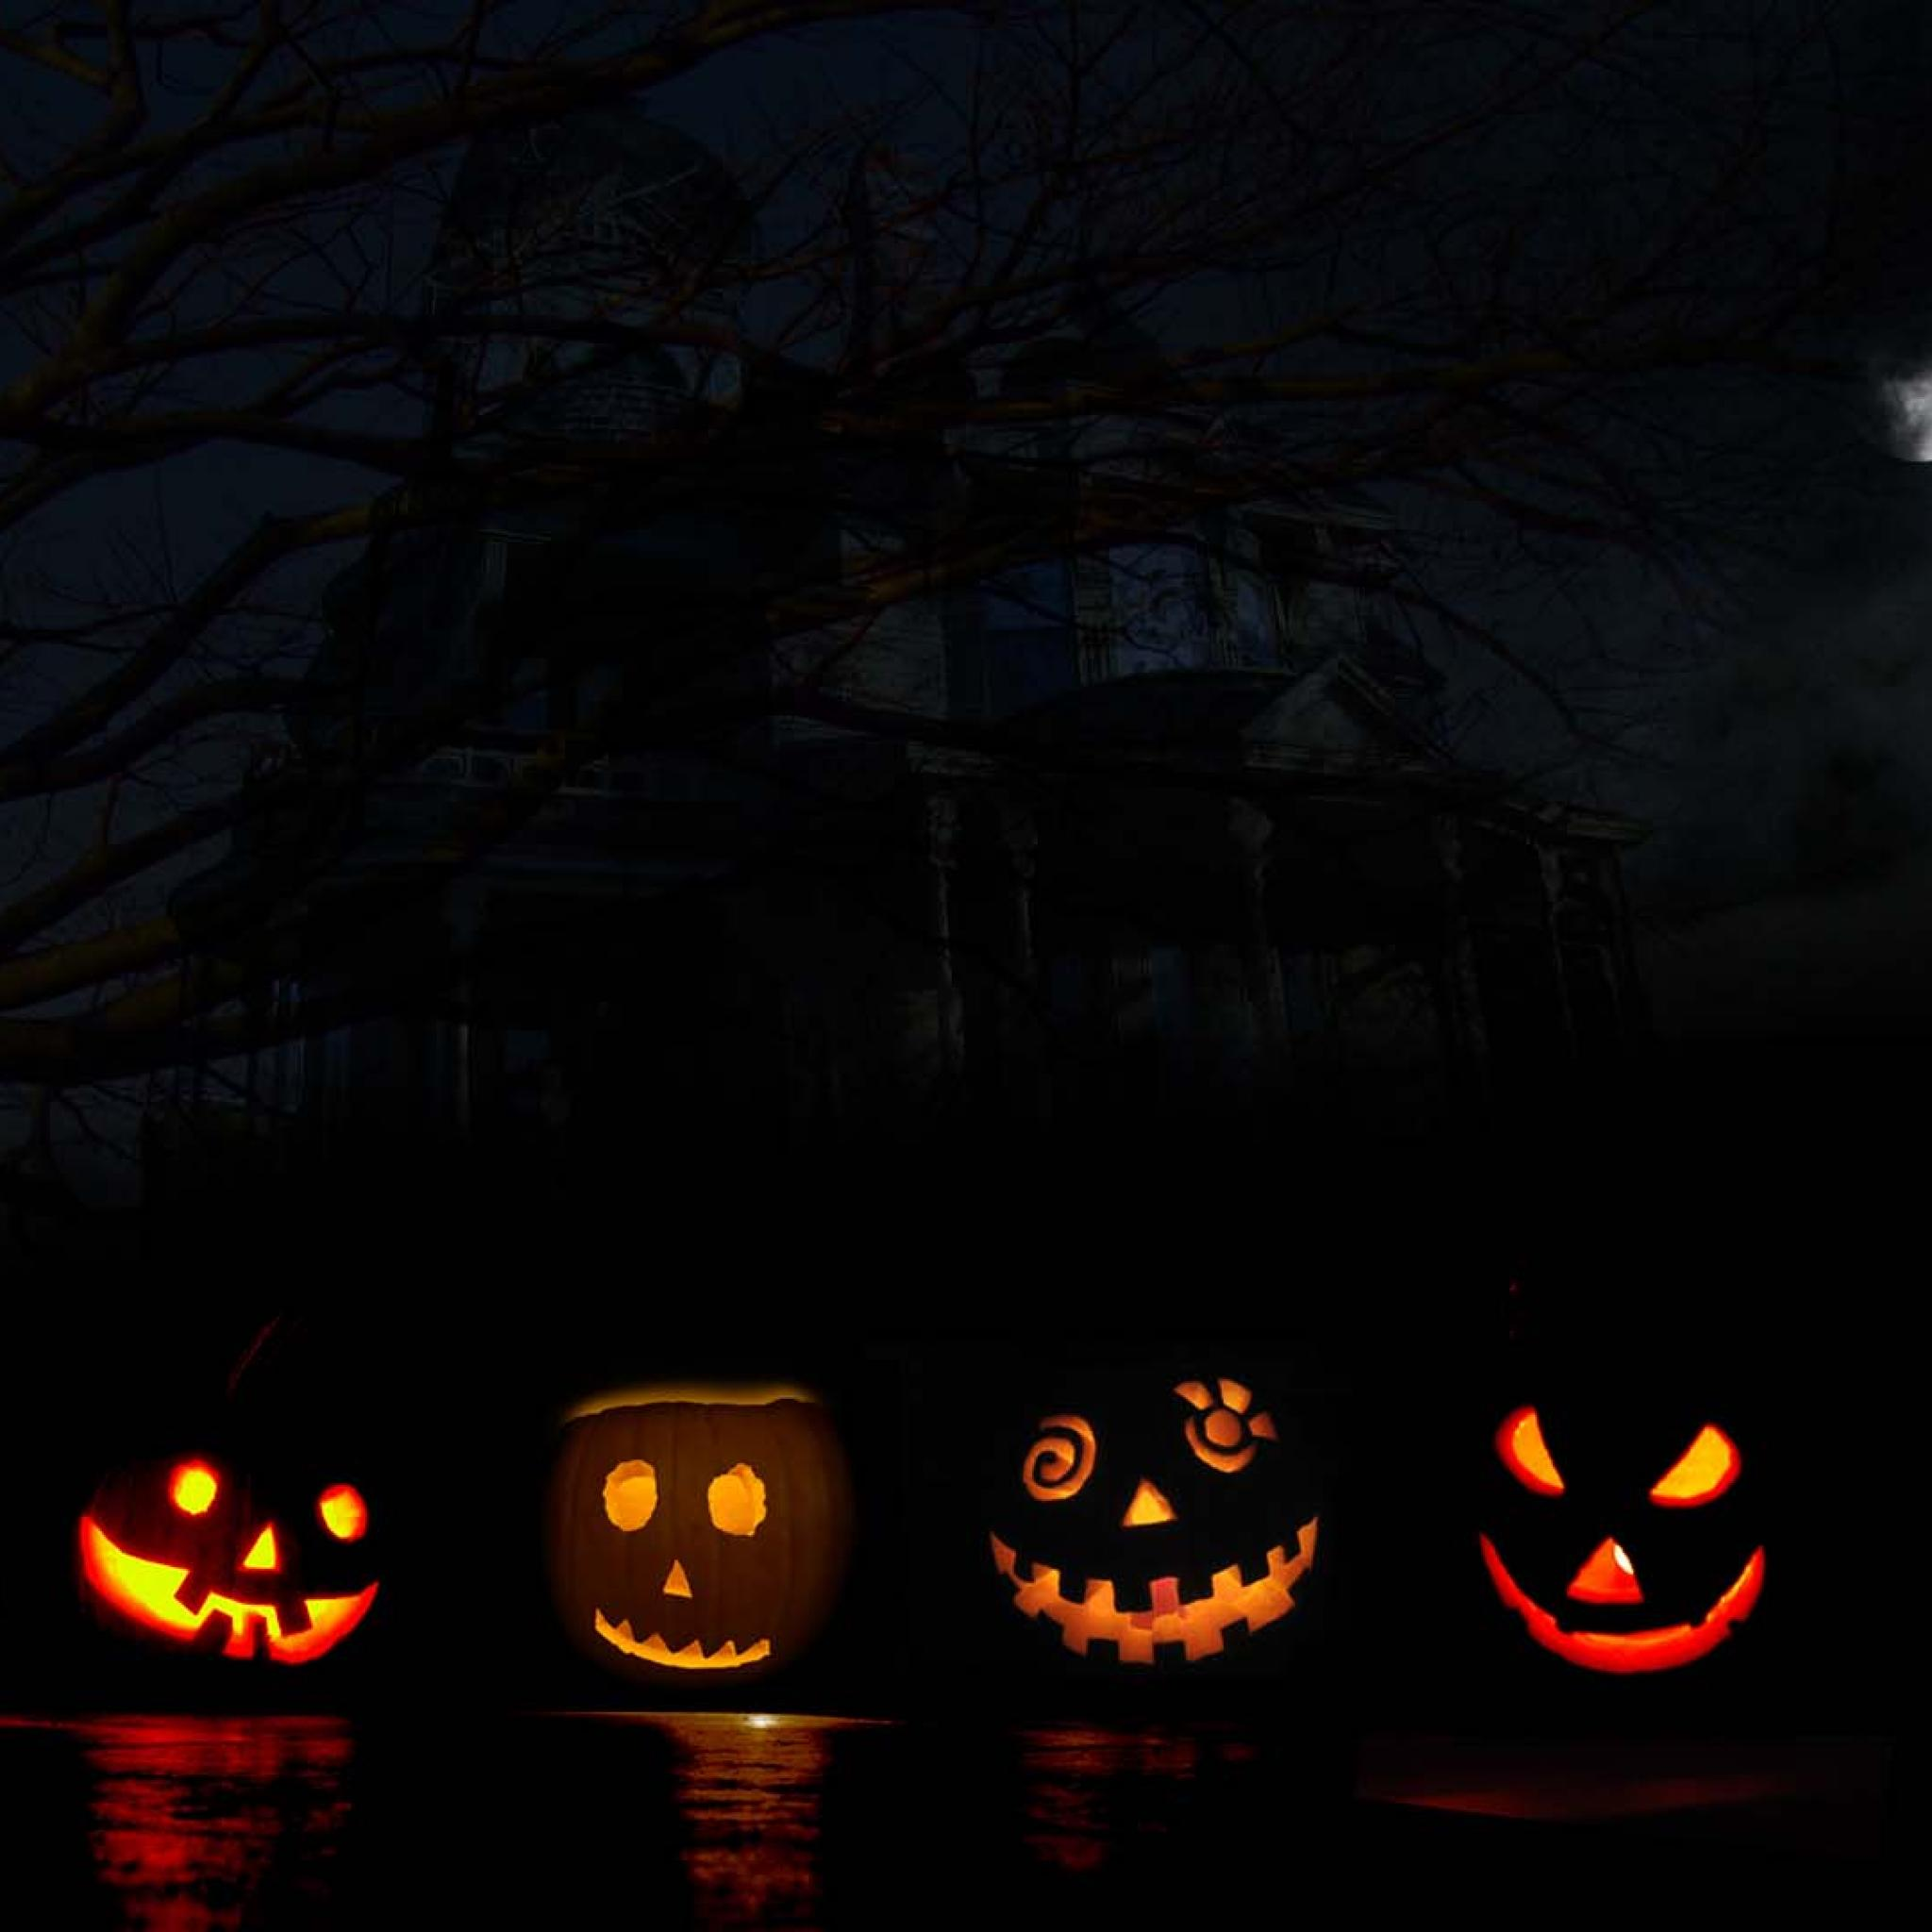 download ipad halloween wallpaper gallery